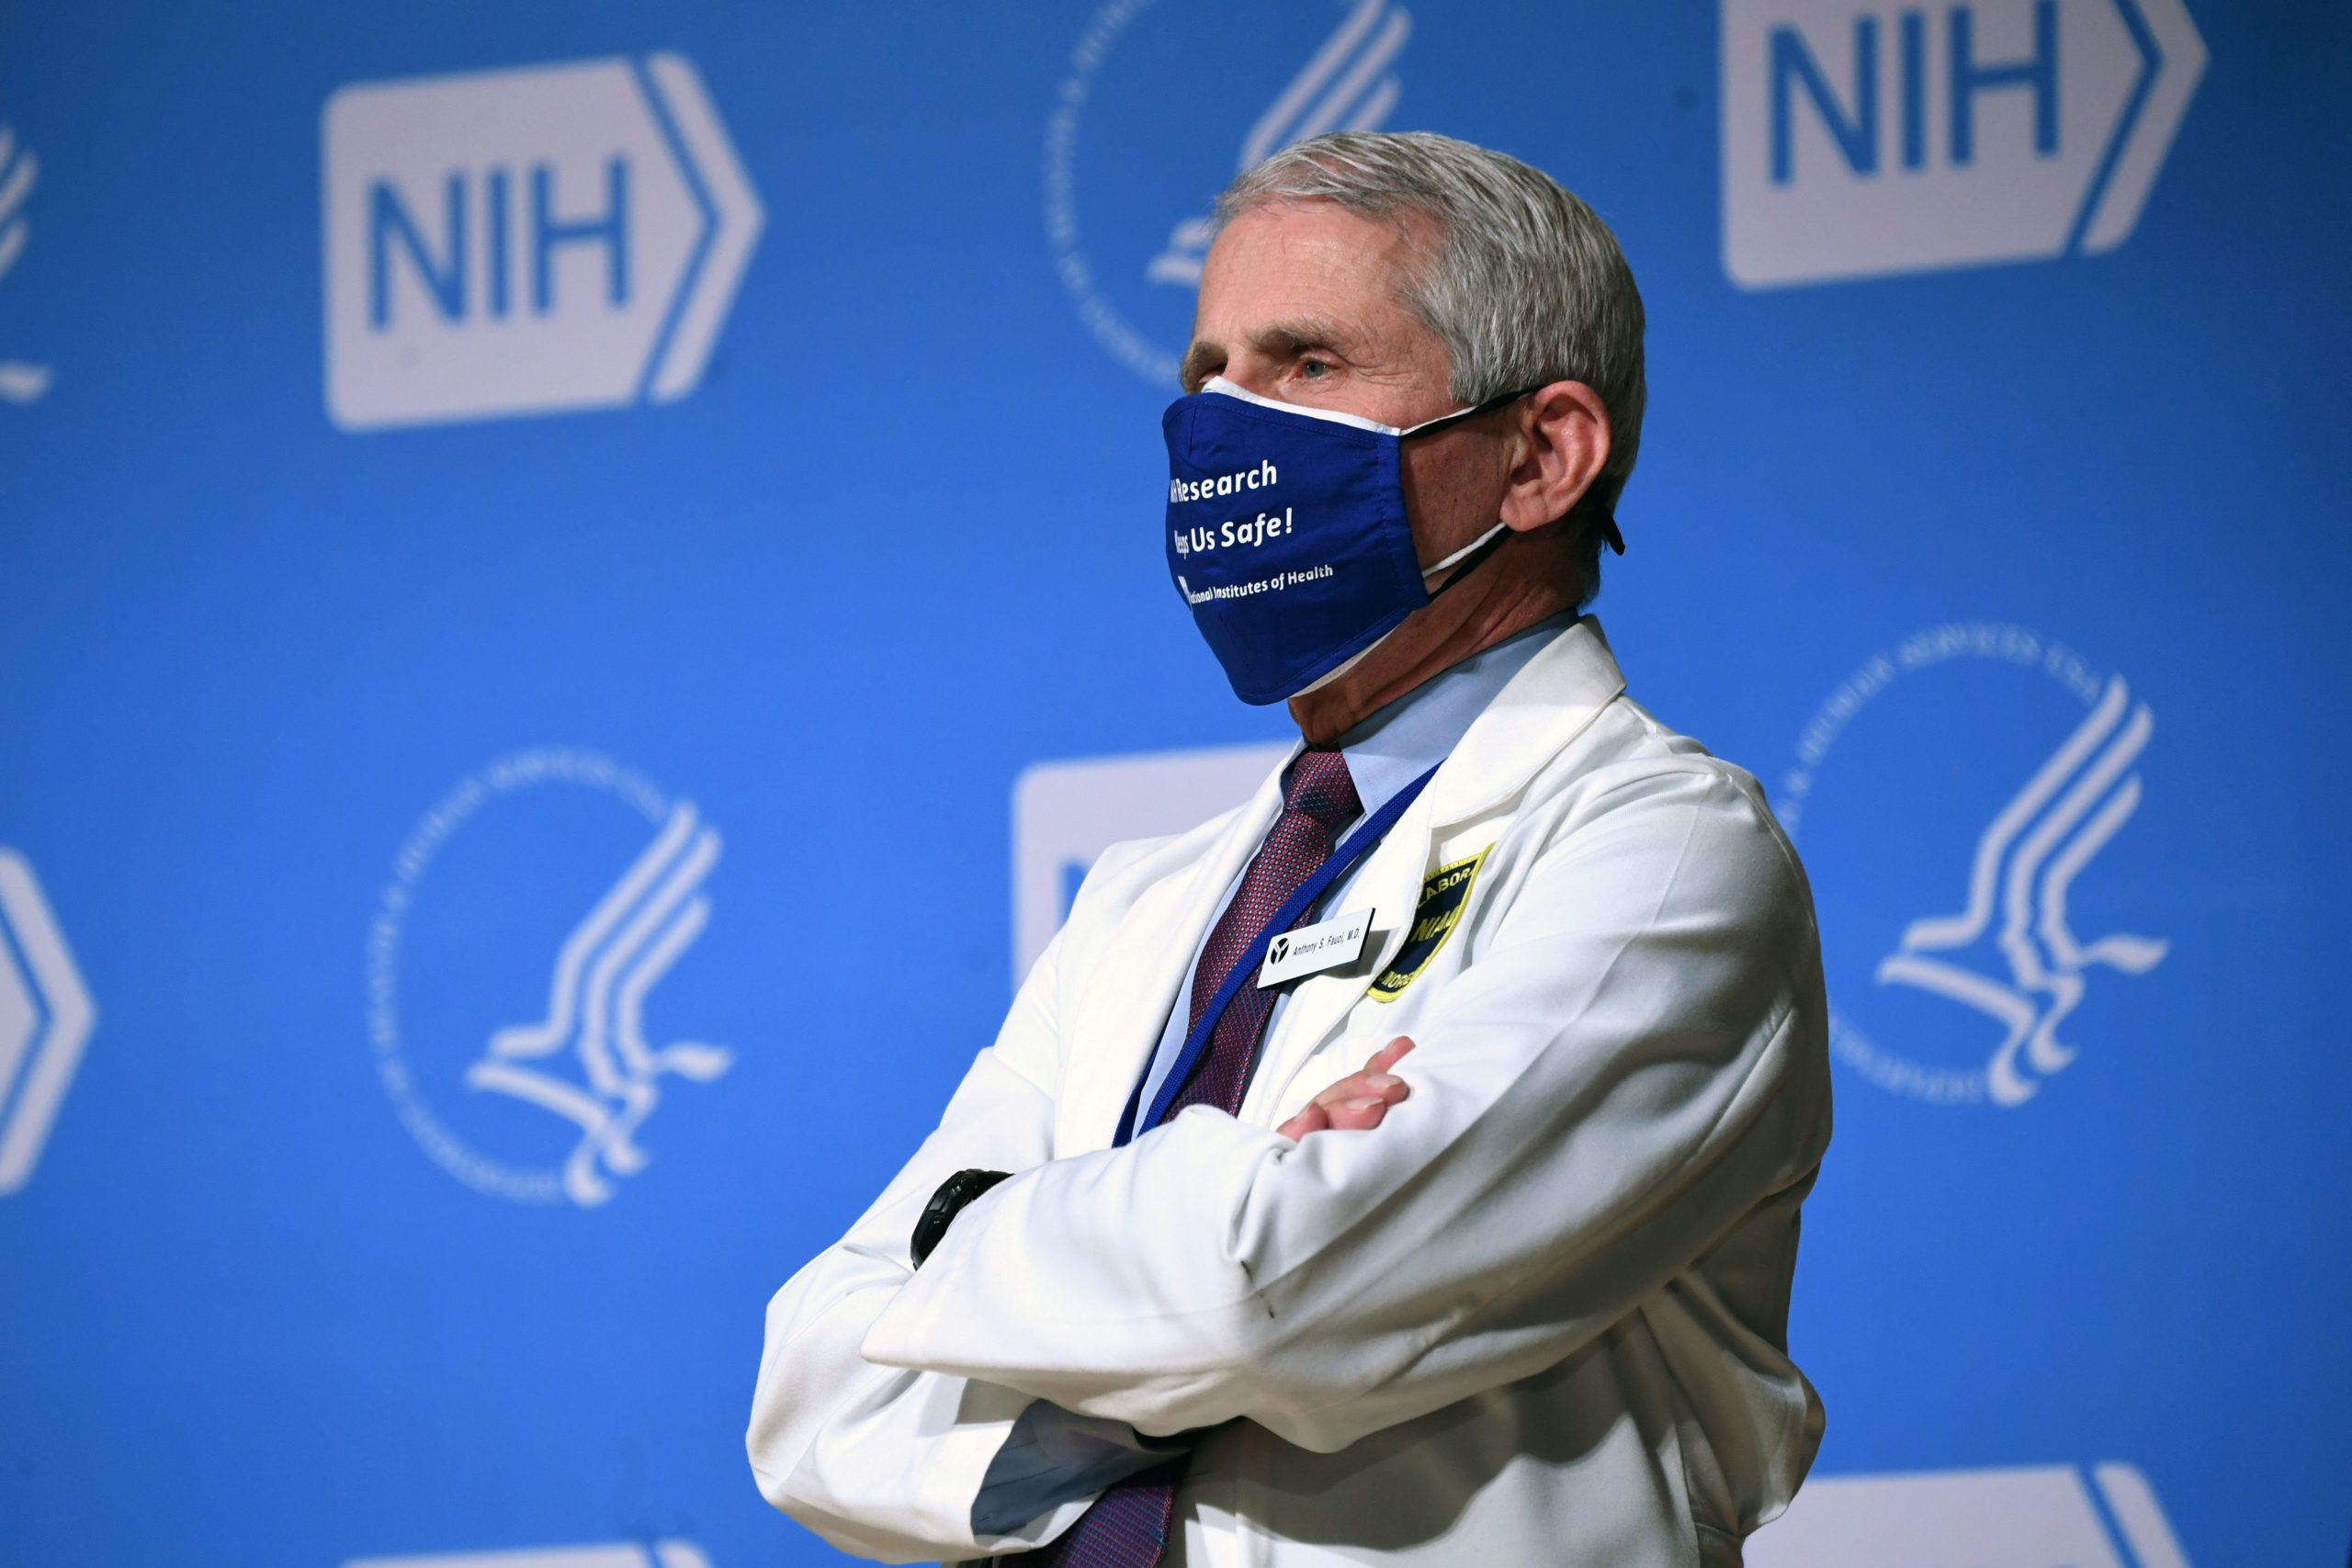 White House Chief Medical Adviser on Covid-19 Dr. Anthony Fauci listens to US President Joe Biden (out of frame) speak during a visit to the National Institutes of Health (NIH) in Bethesda, Maryland, February 11, 2021. (Photo by SAUL LOEB/AFP via Getty Images)